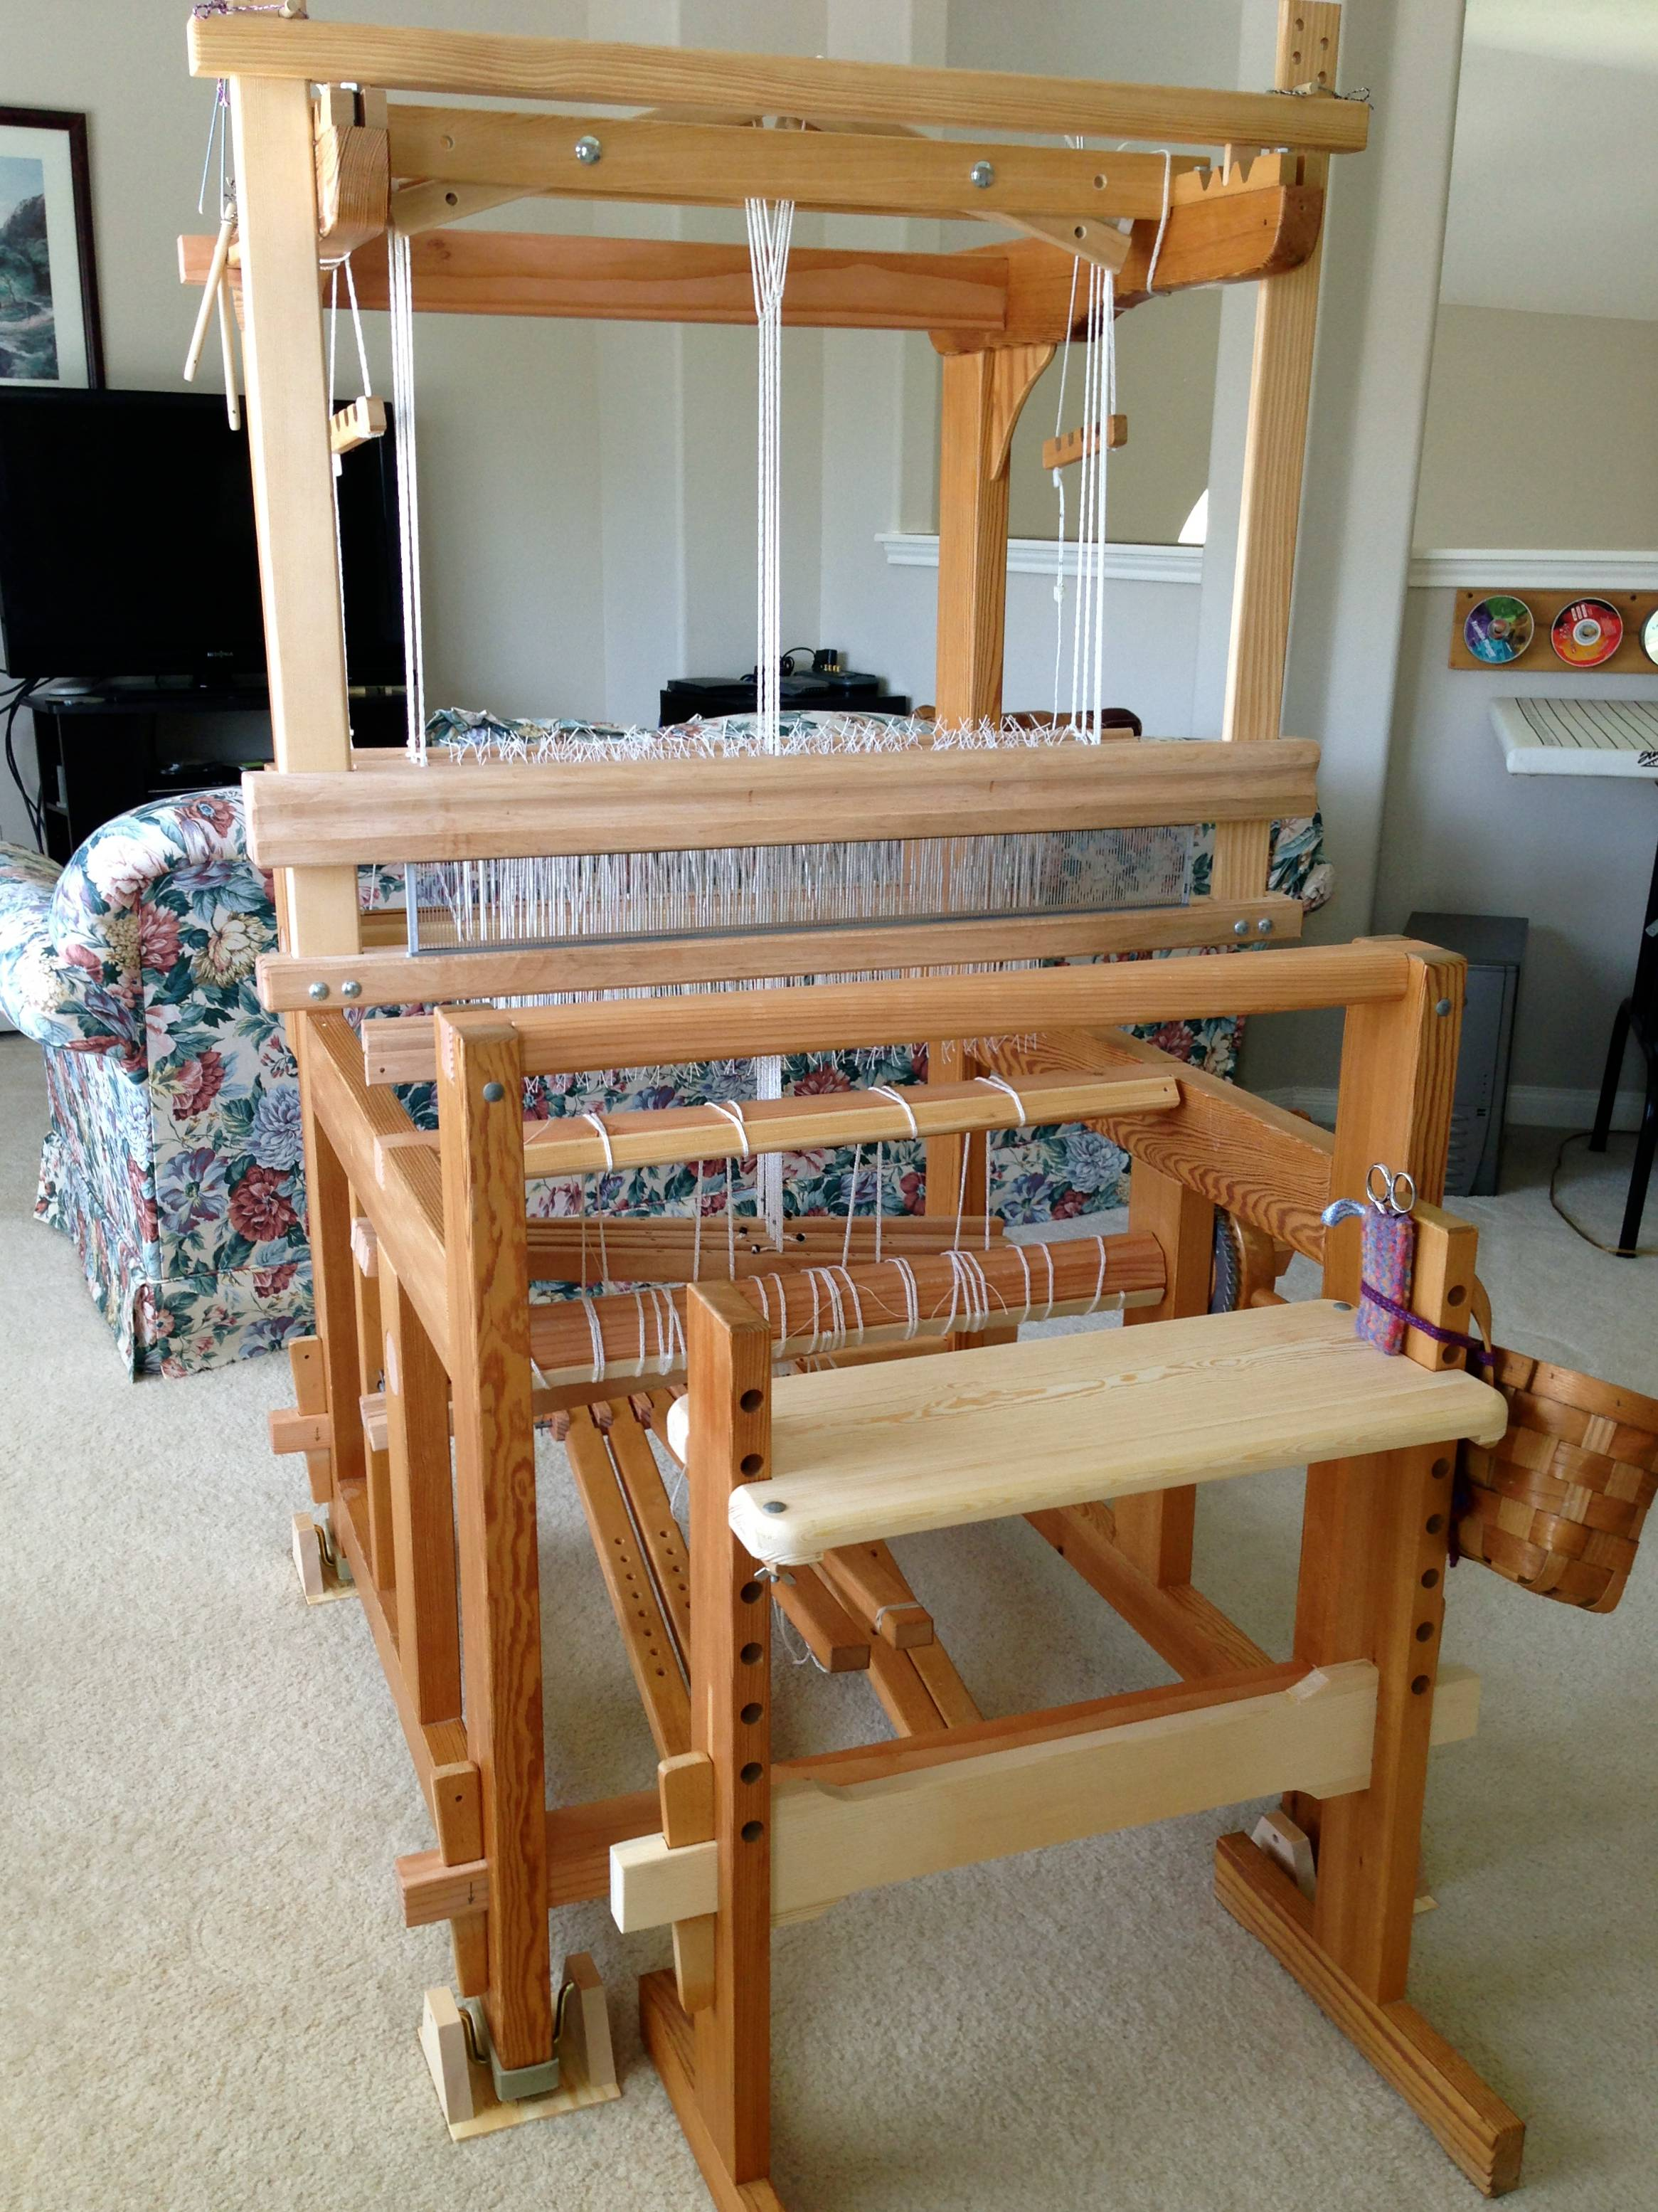 The Ideal Wardrobe: Quiet Friday: Cutest Loom Ever